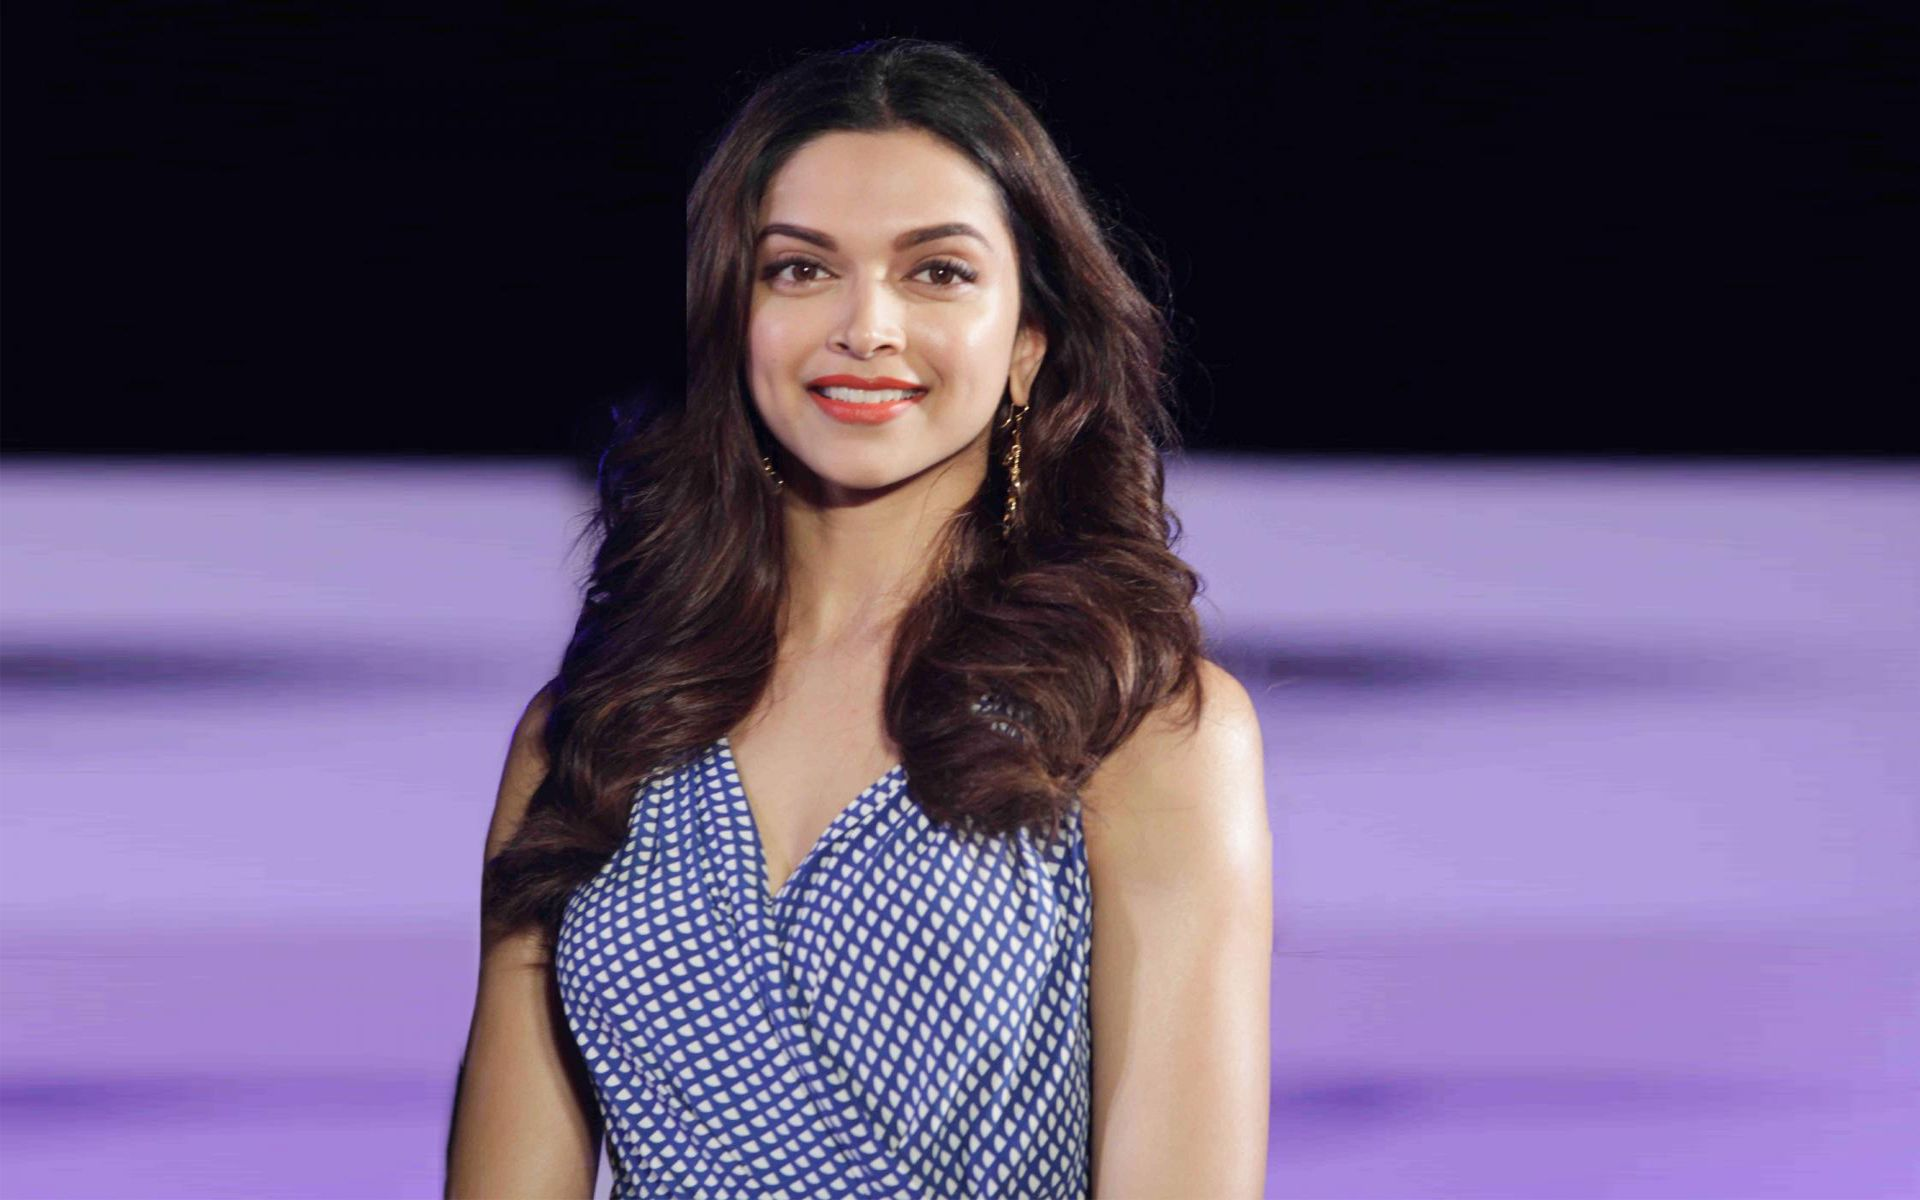 Deepika padukone wallpapers widescreen quality hd wallpapers deepika padukone wallpapers widescreen quality hd voltagebd Gallery